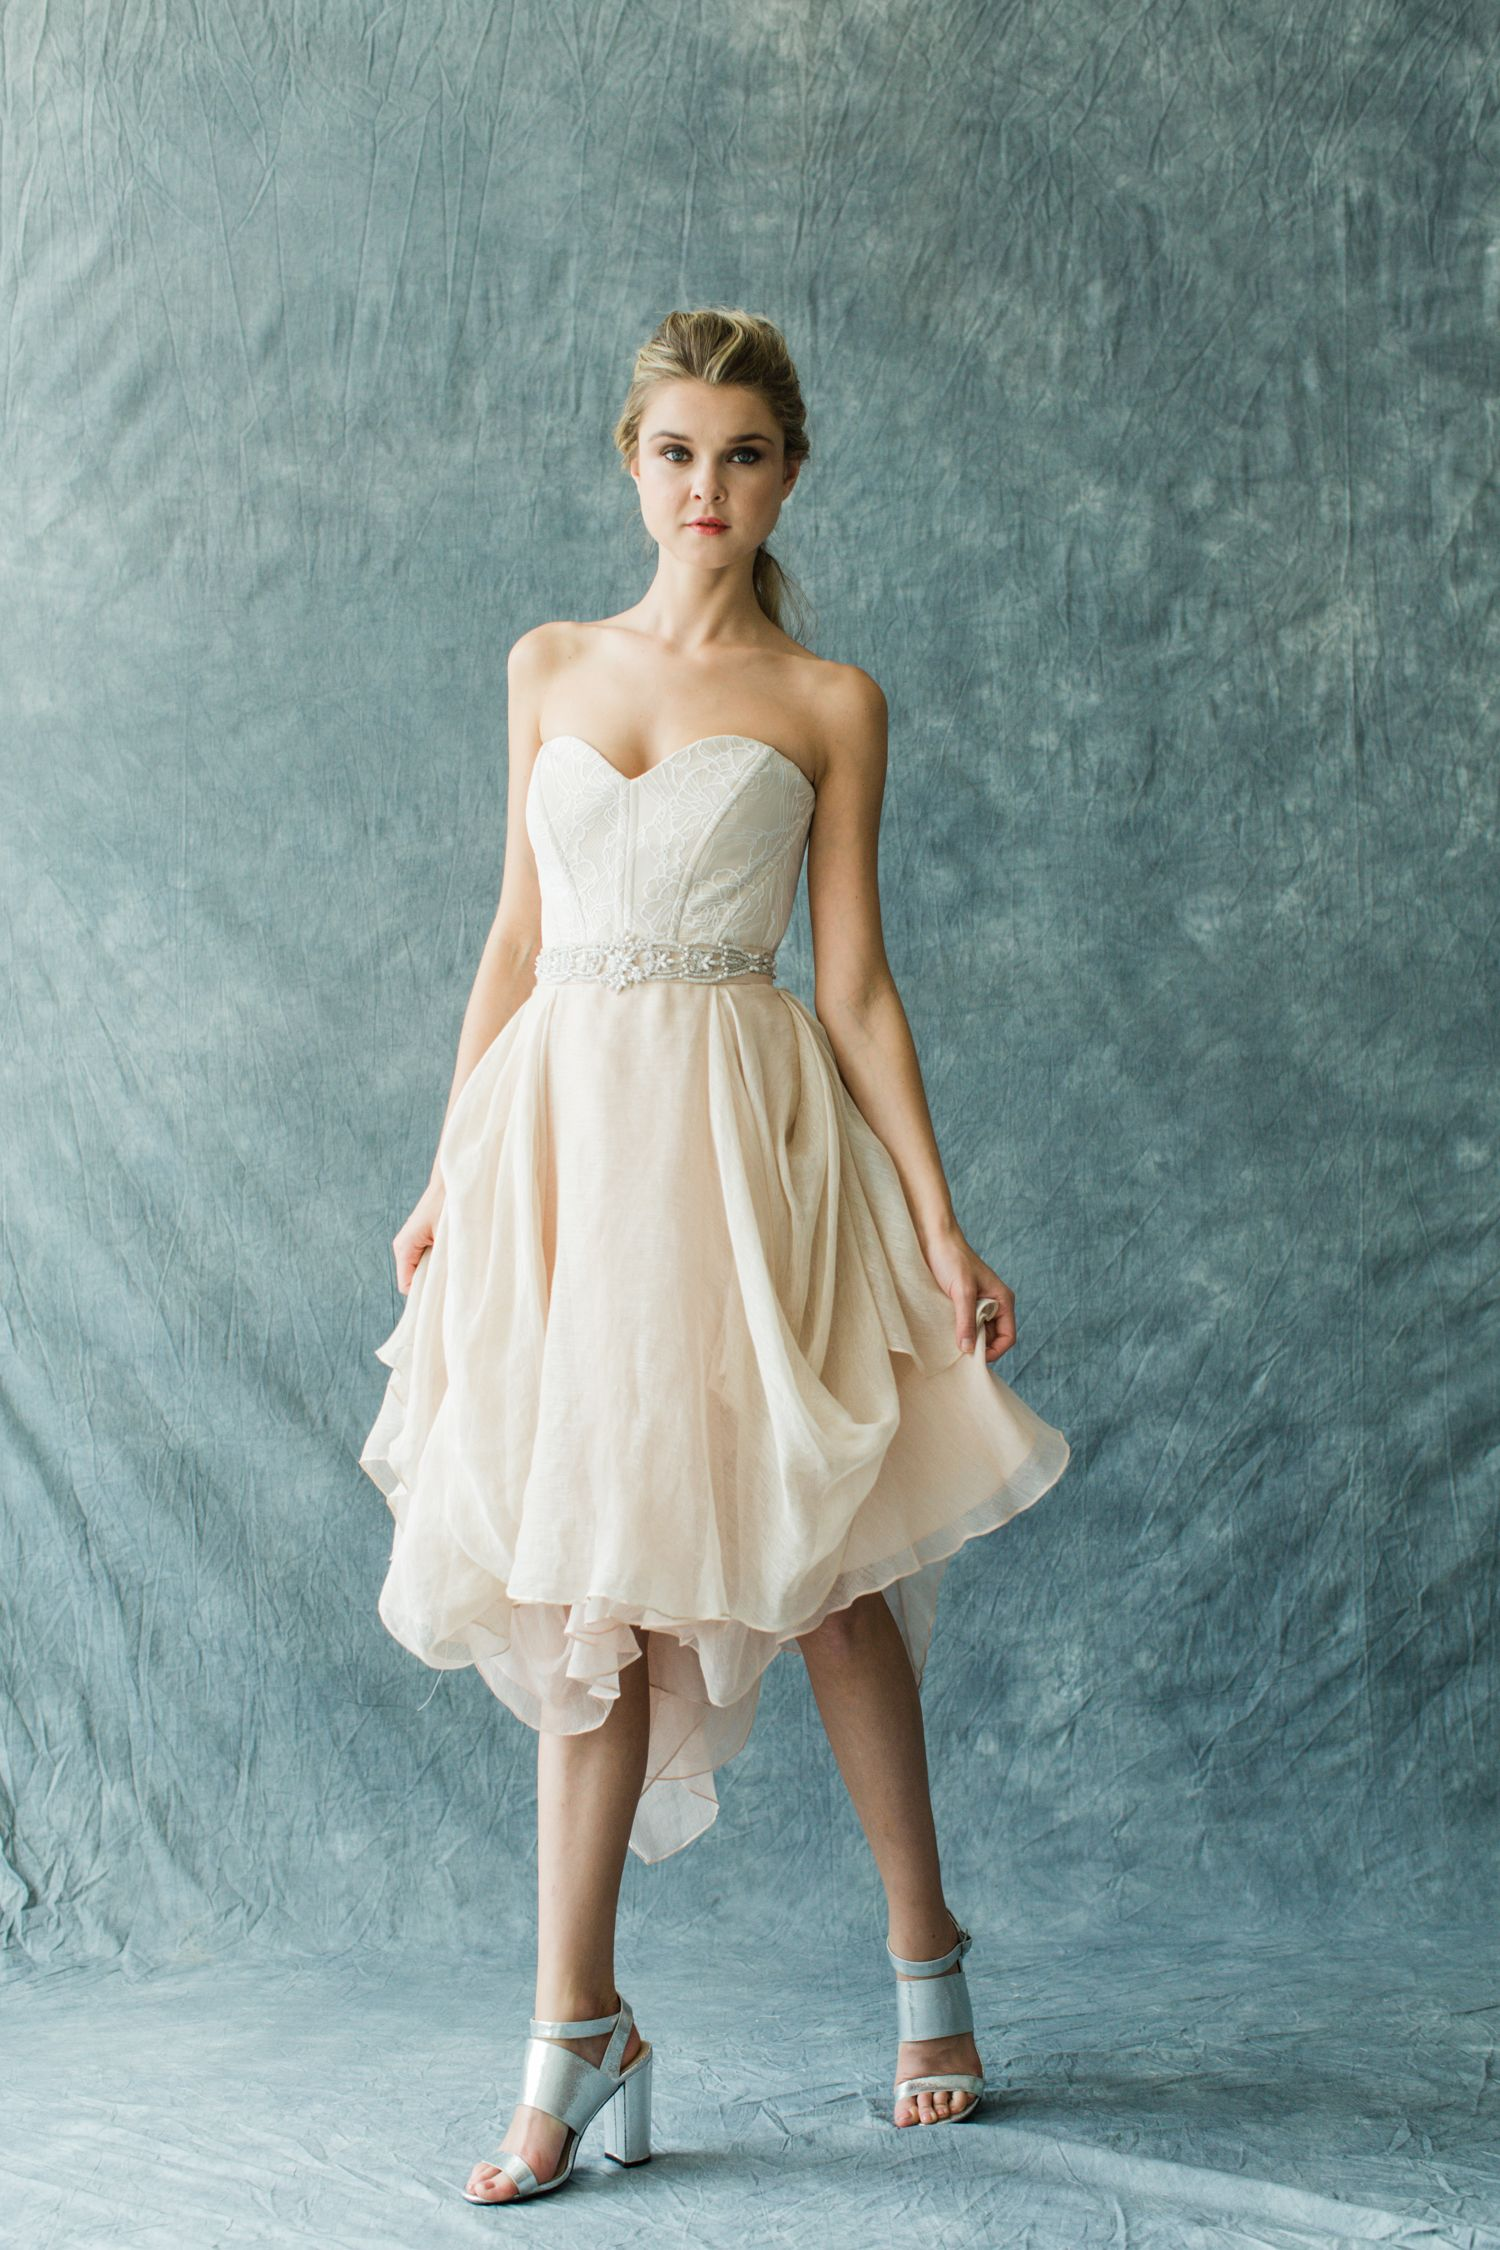 Kensington Shorty // Blush/Champagne | Pinterest | Open weave, Linen ...